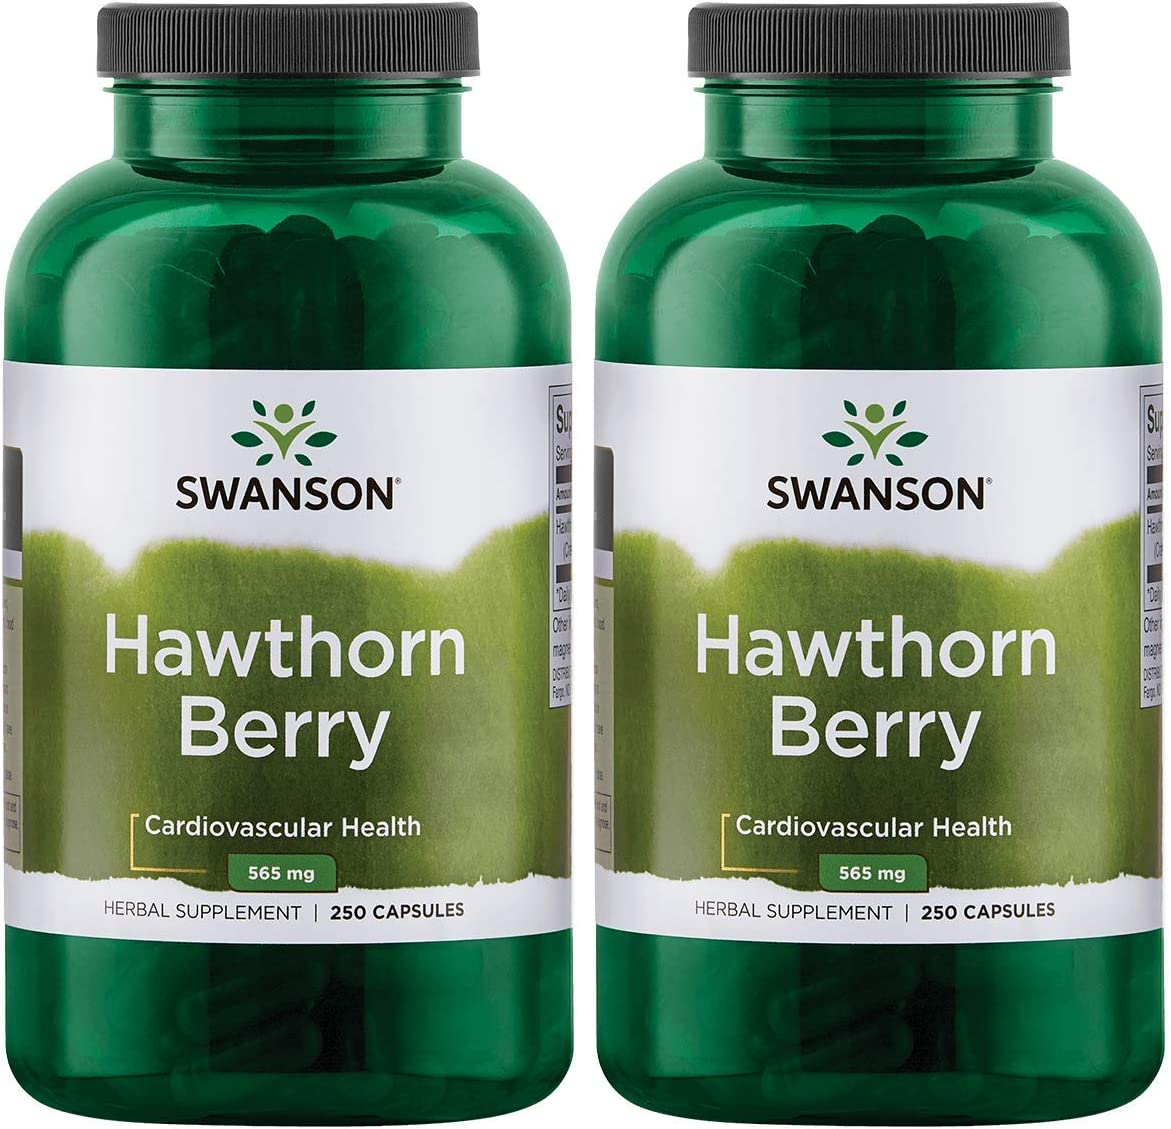 Swanson Hawthorn Berries Heart Nutrition Supplement 565 mg 250 Capsules 2 Pack